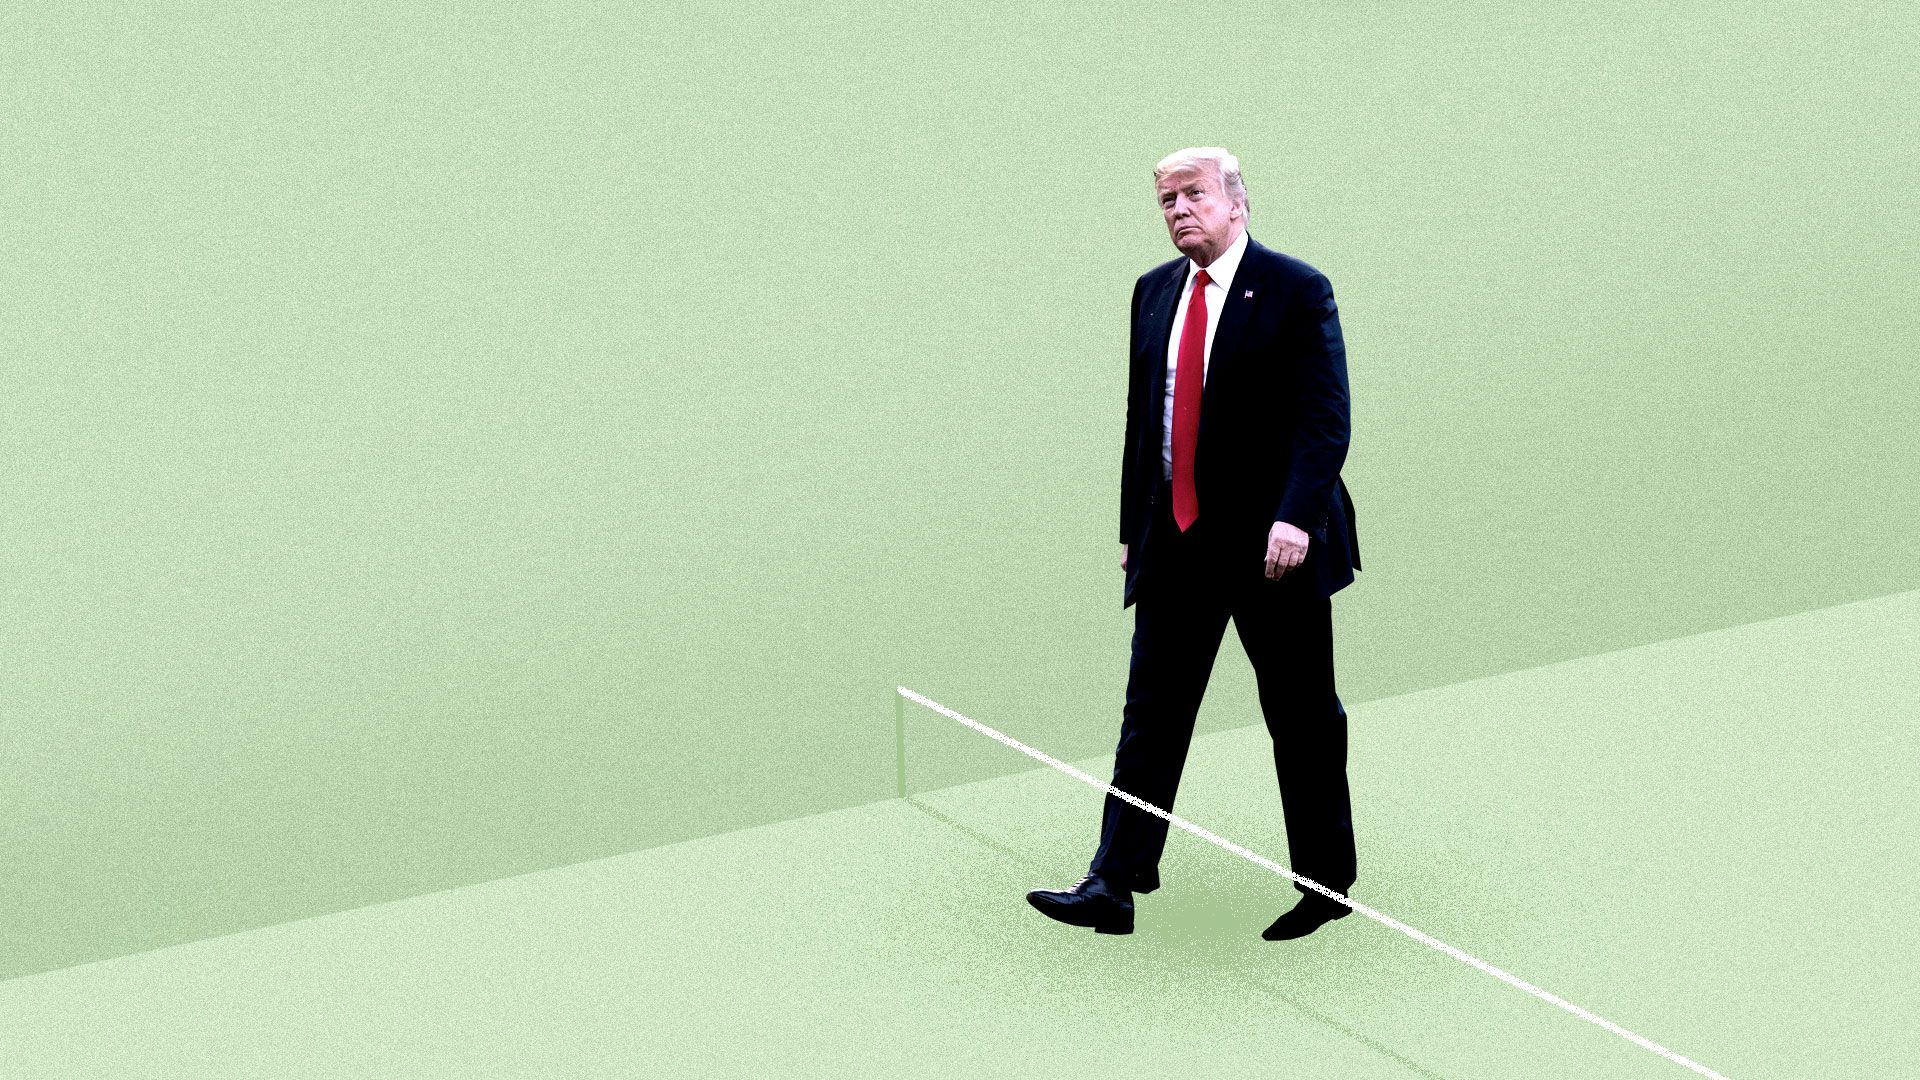 President Donald Trump about to walk into a trip wire